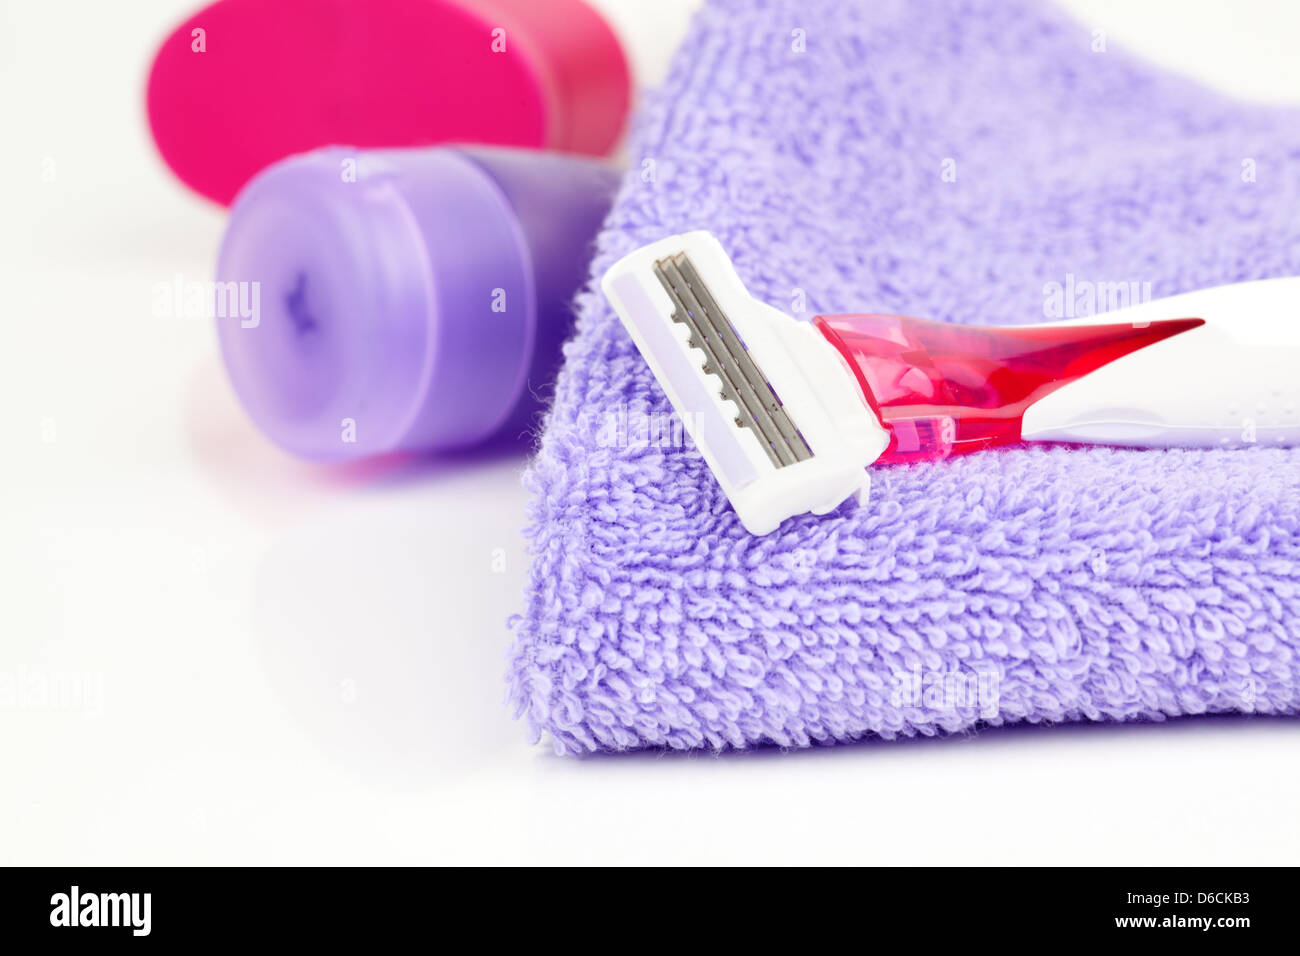 Closeup of pink shaving blade on towel with moisturizer - Stock Image